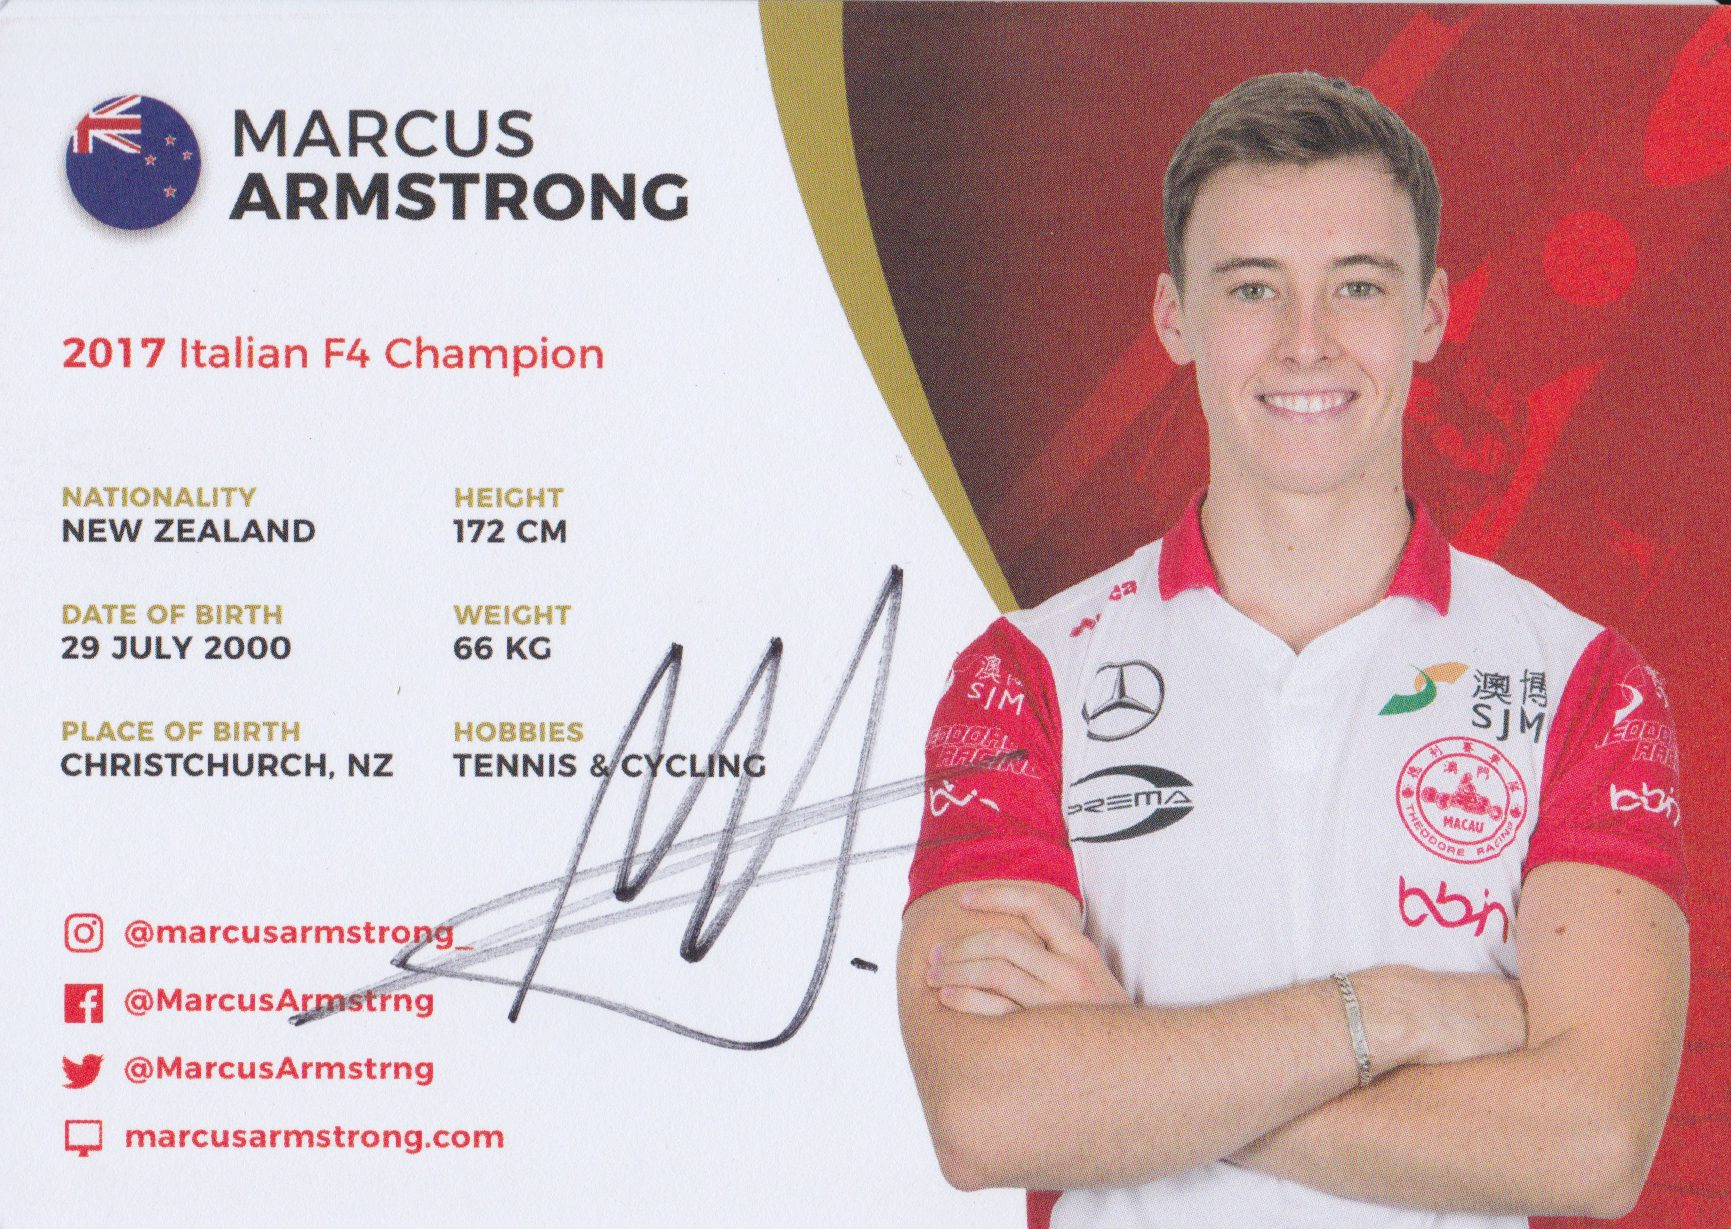 Marcus Armstrong Theodore Racing 2018